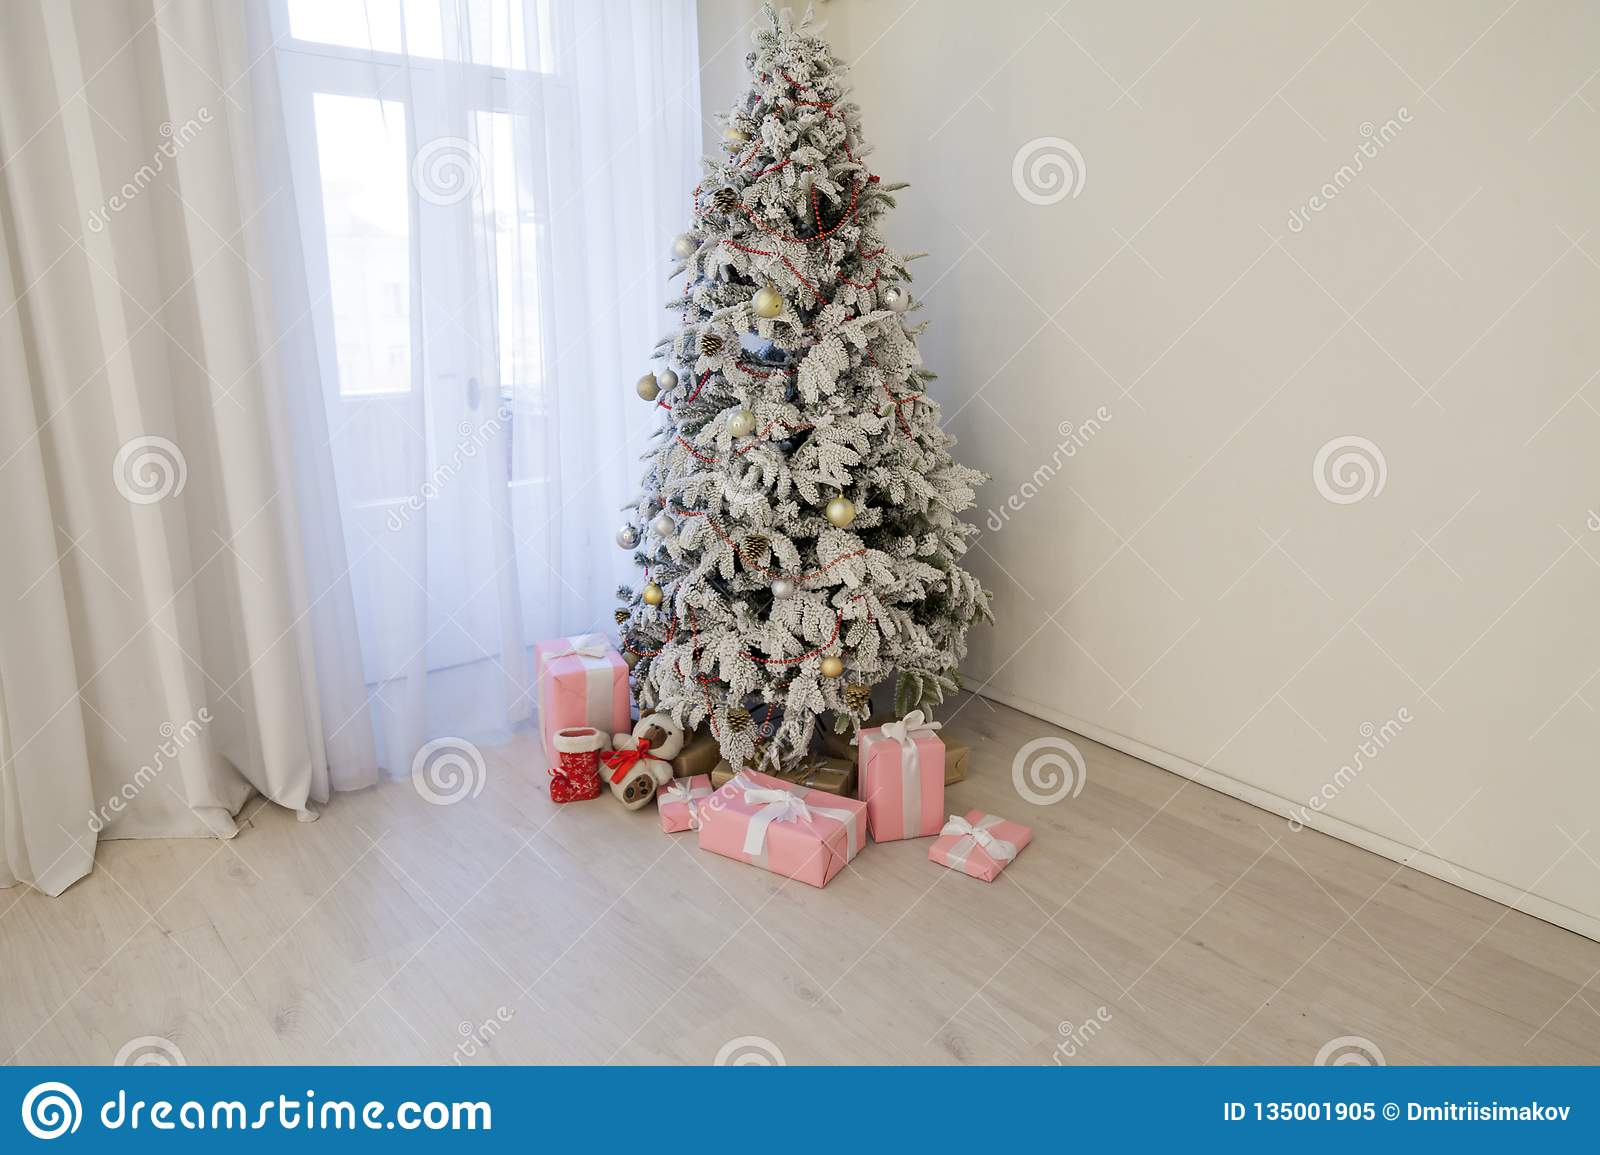 White House Christmas Tour 2020.Christmas Tree Garland Lights New Year Gifts Holiday White